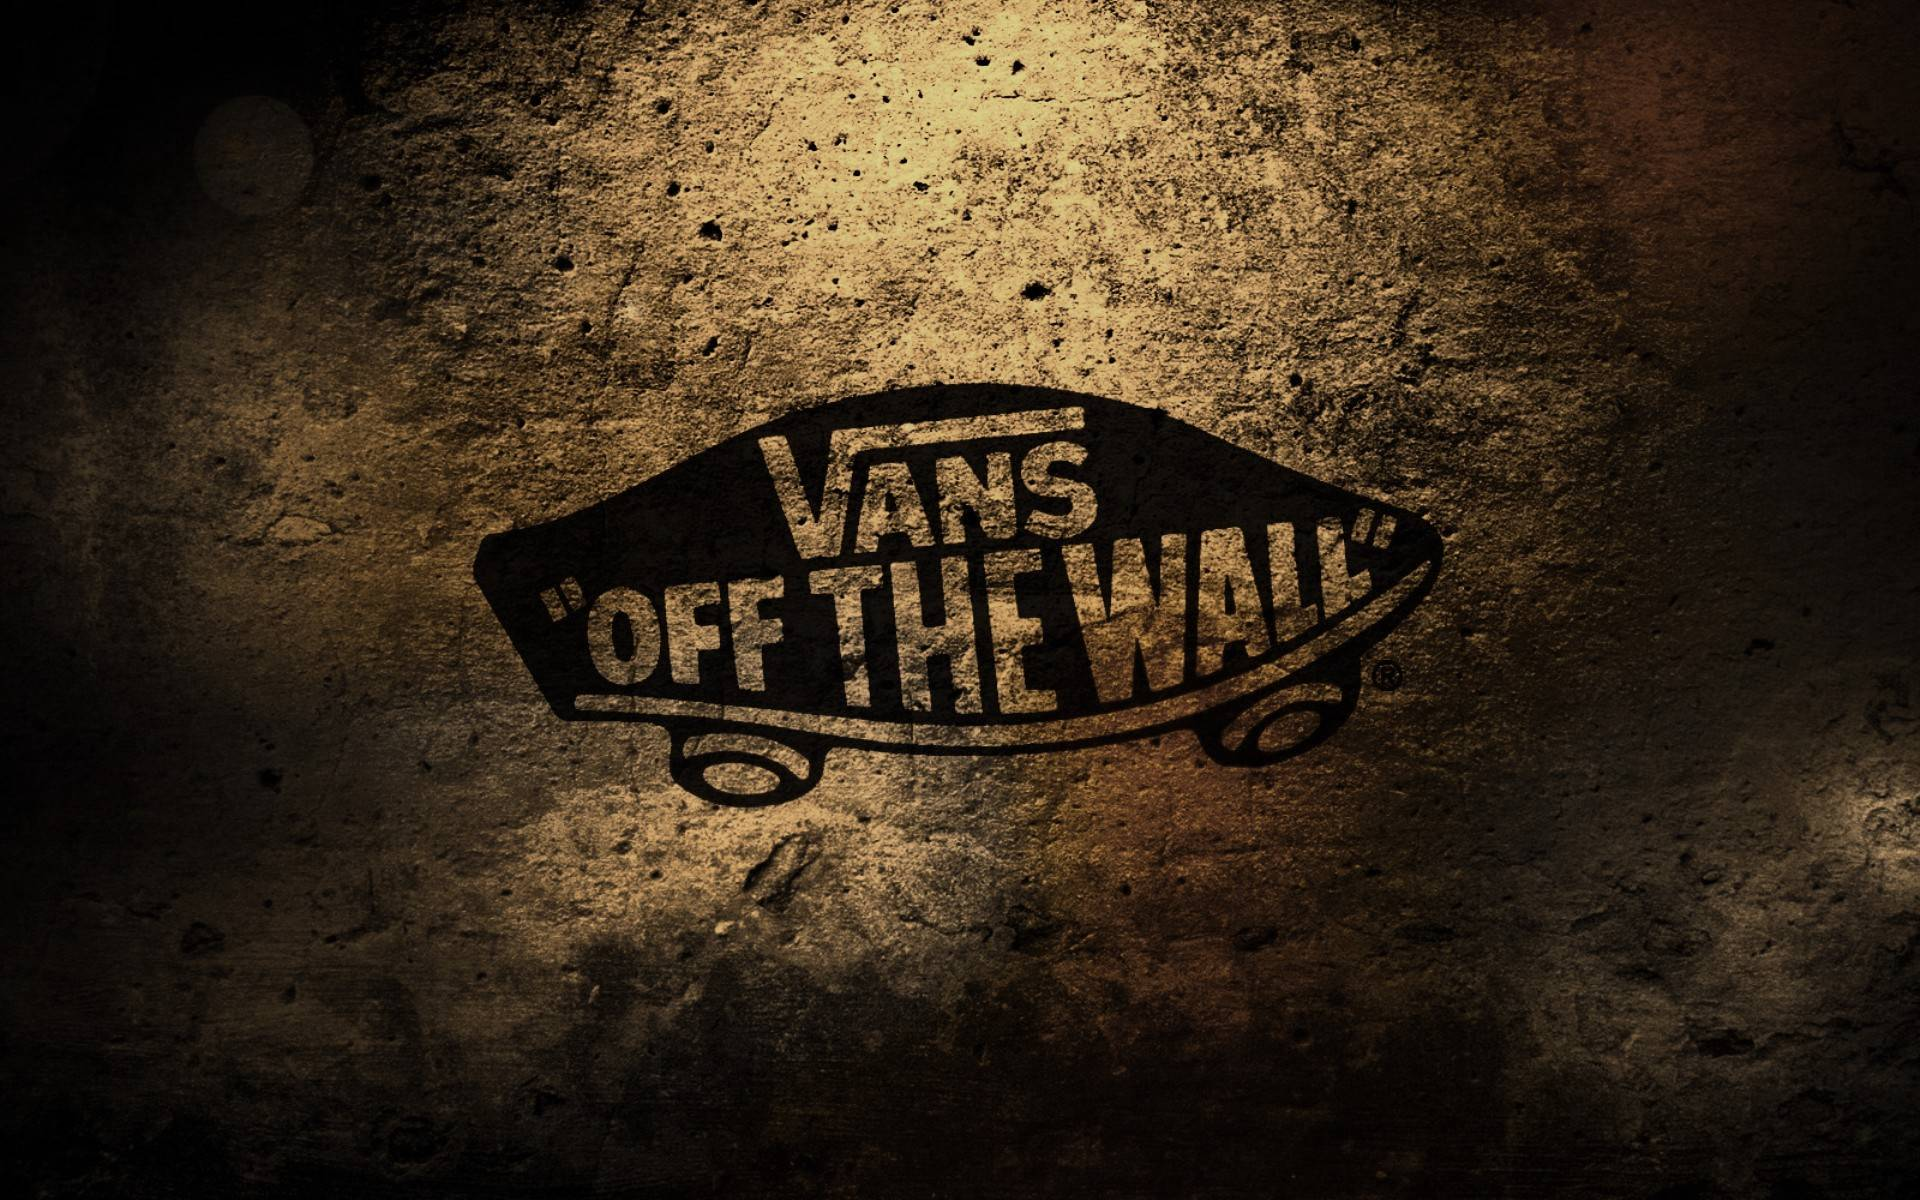 vans skateboard wallpaper 3d - photo #4